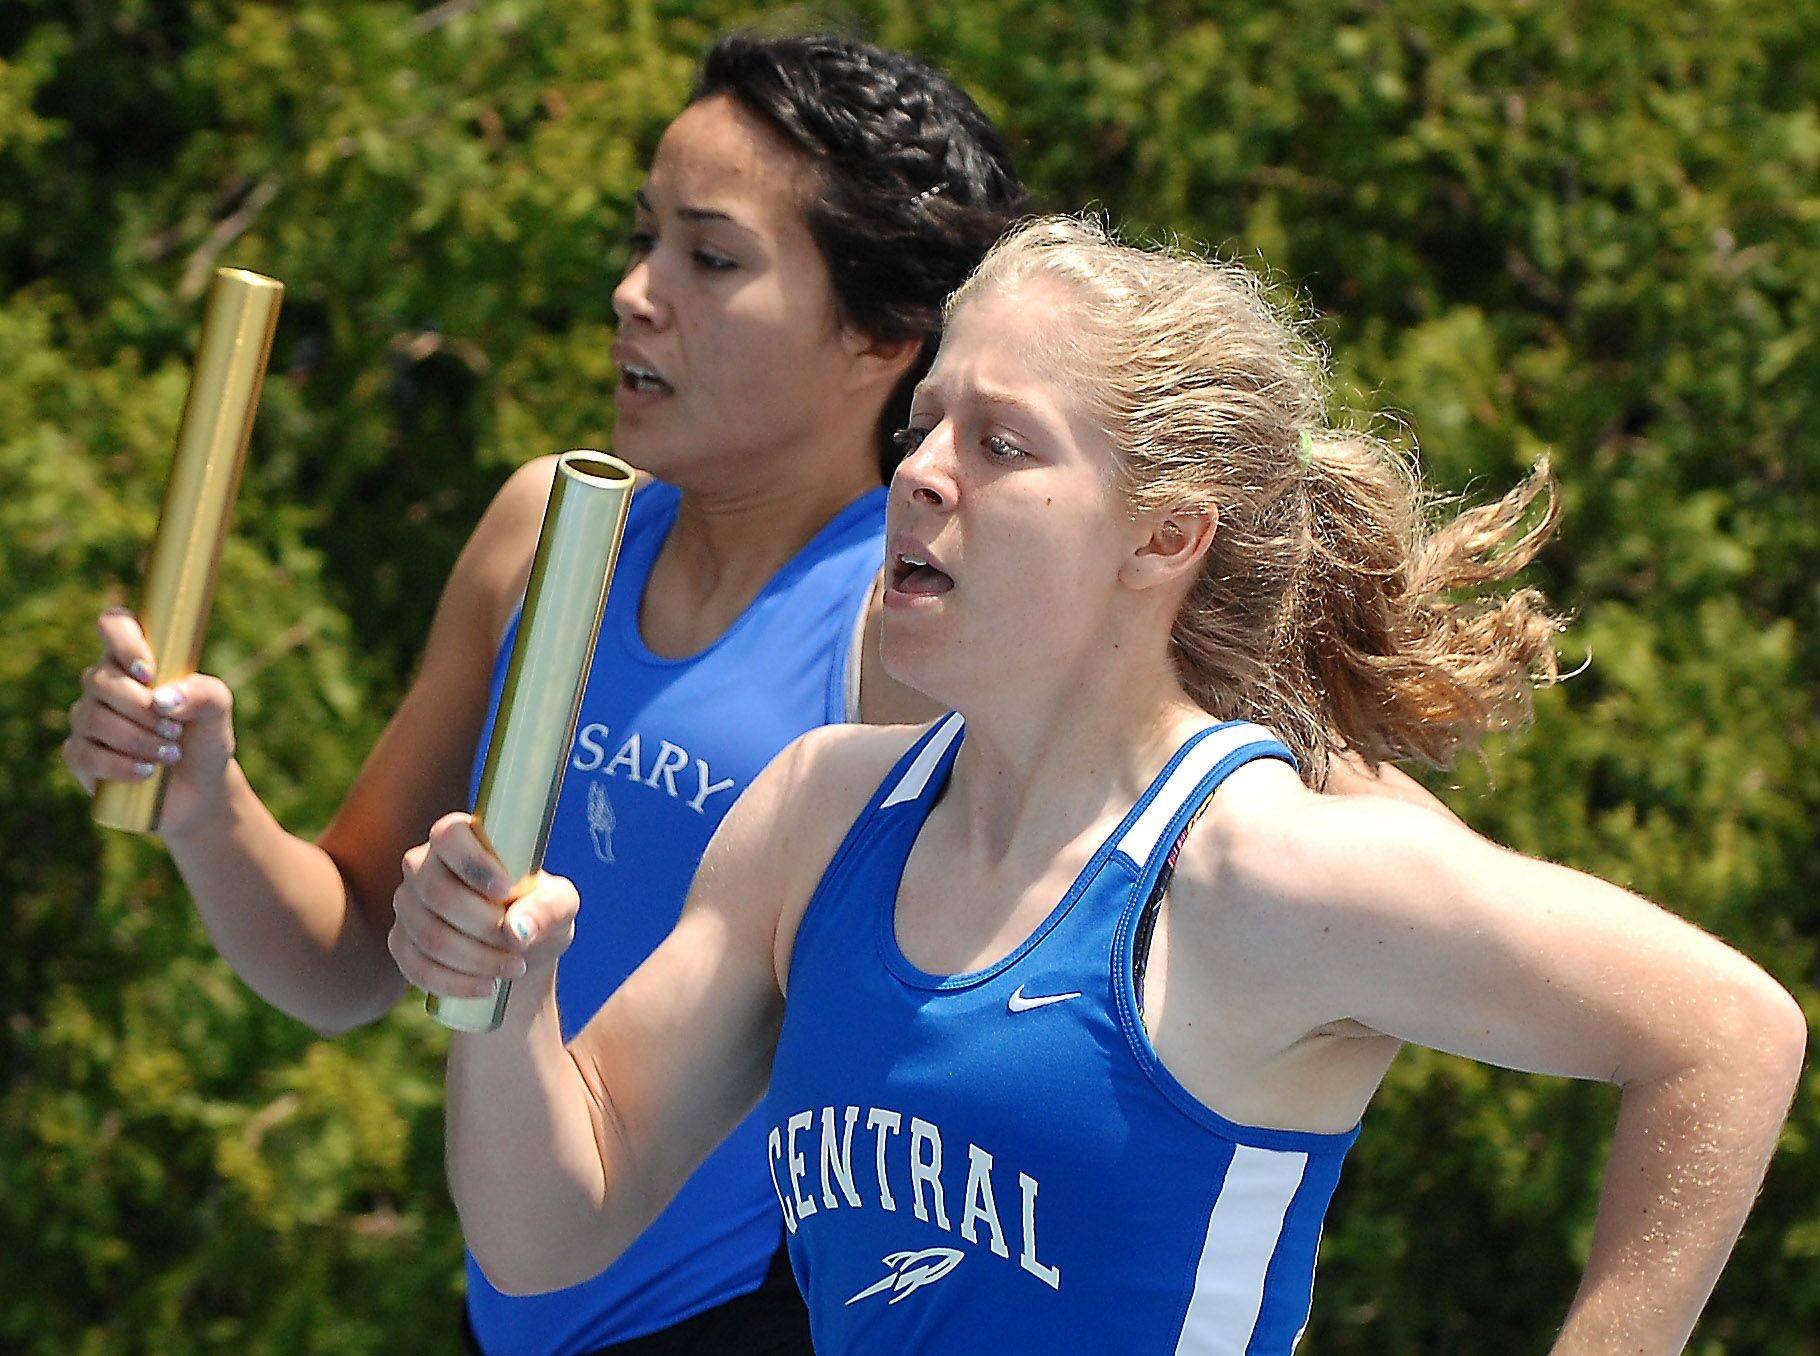 Burlington Central's Kayla Wolf and Rosary's Jessica Mejia run their legs of the 4x400-meter relay Friday in Charleston.